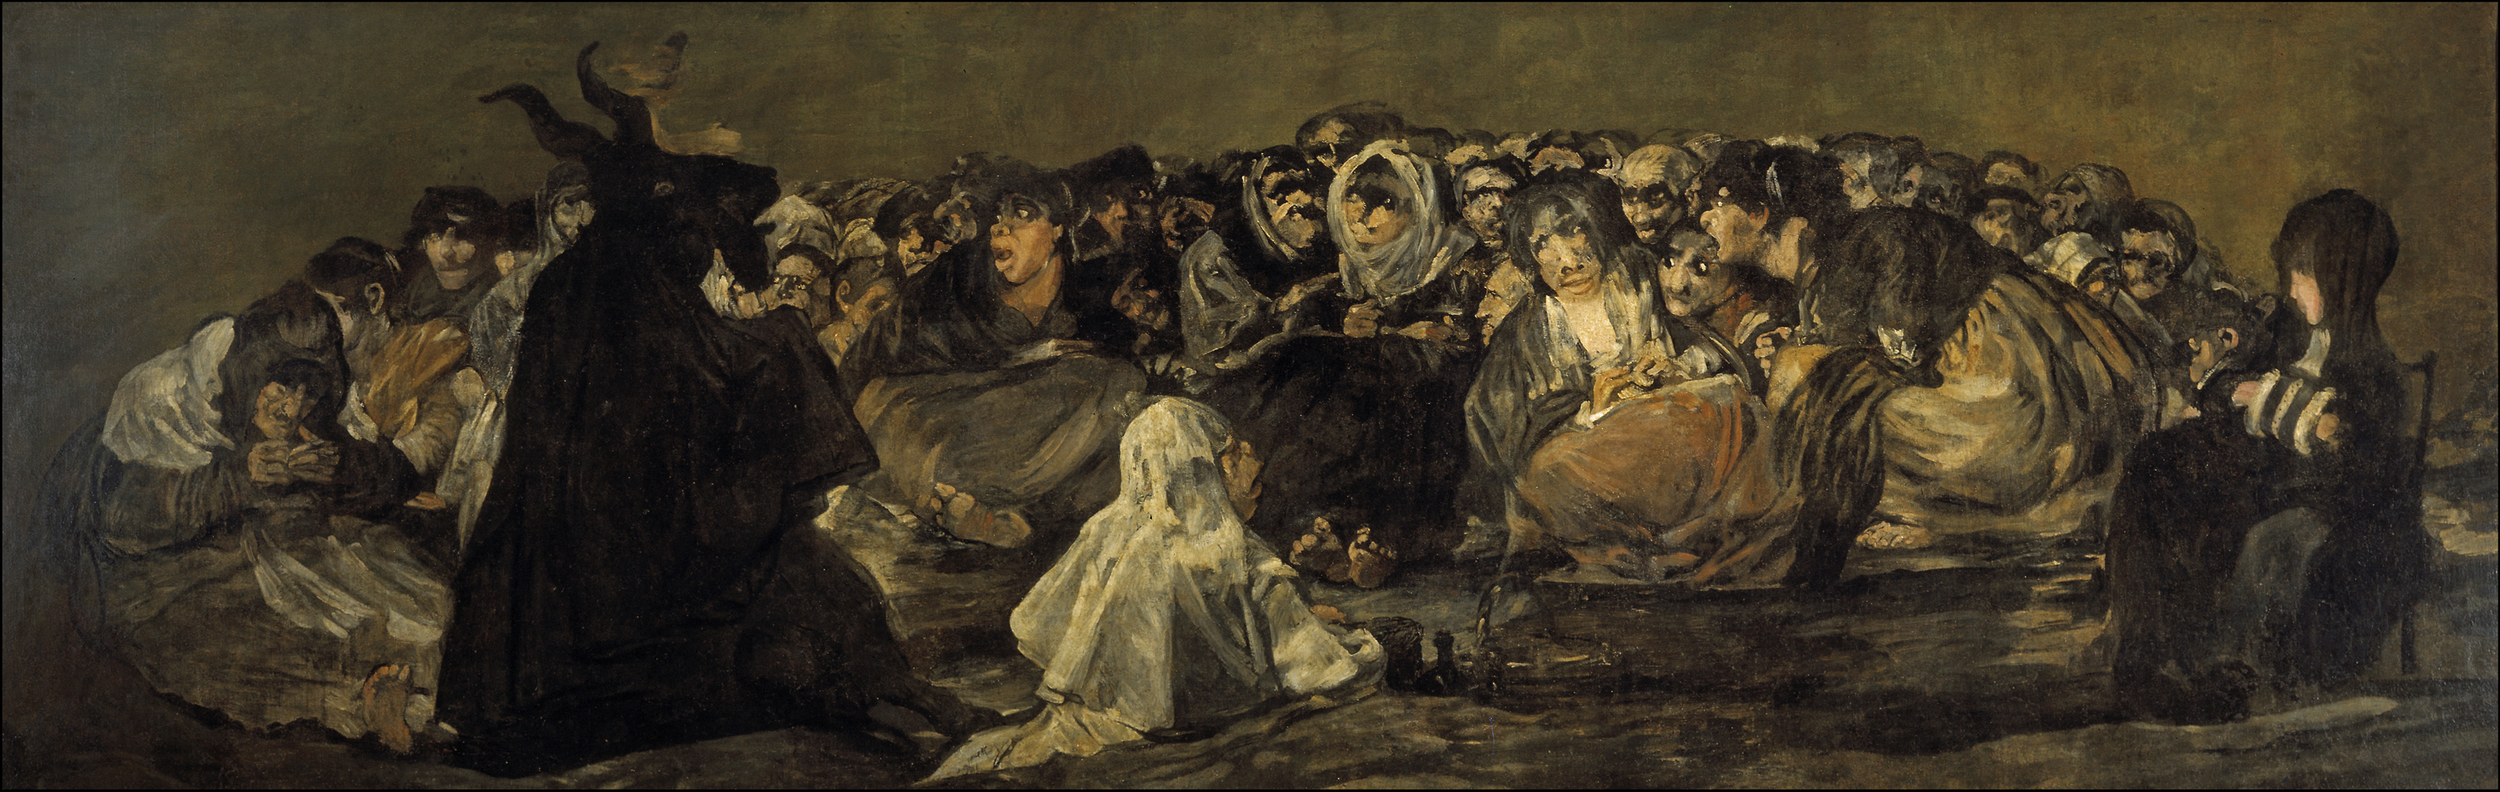 francisco_de_goya_y_lucientes_-_witches_sabbath_the_great_he-goat.jpg